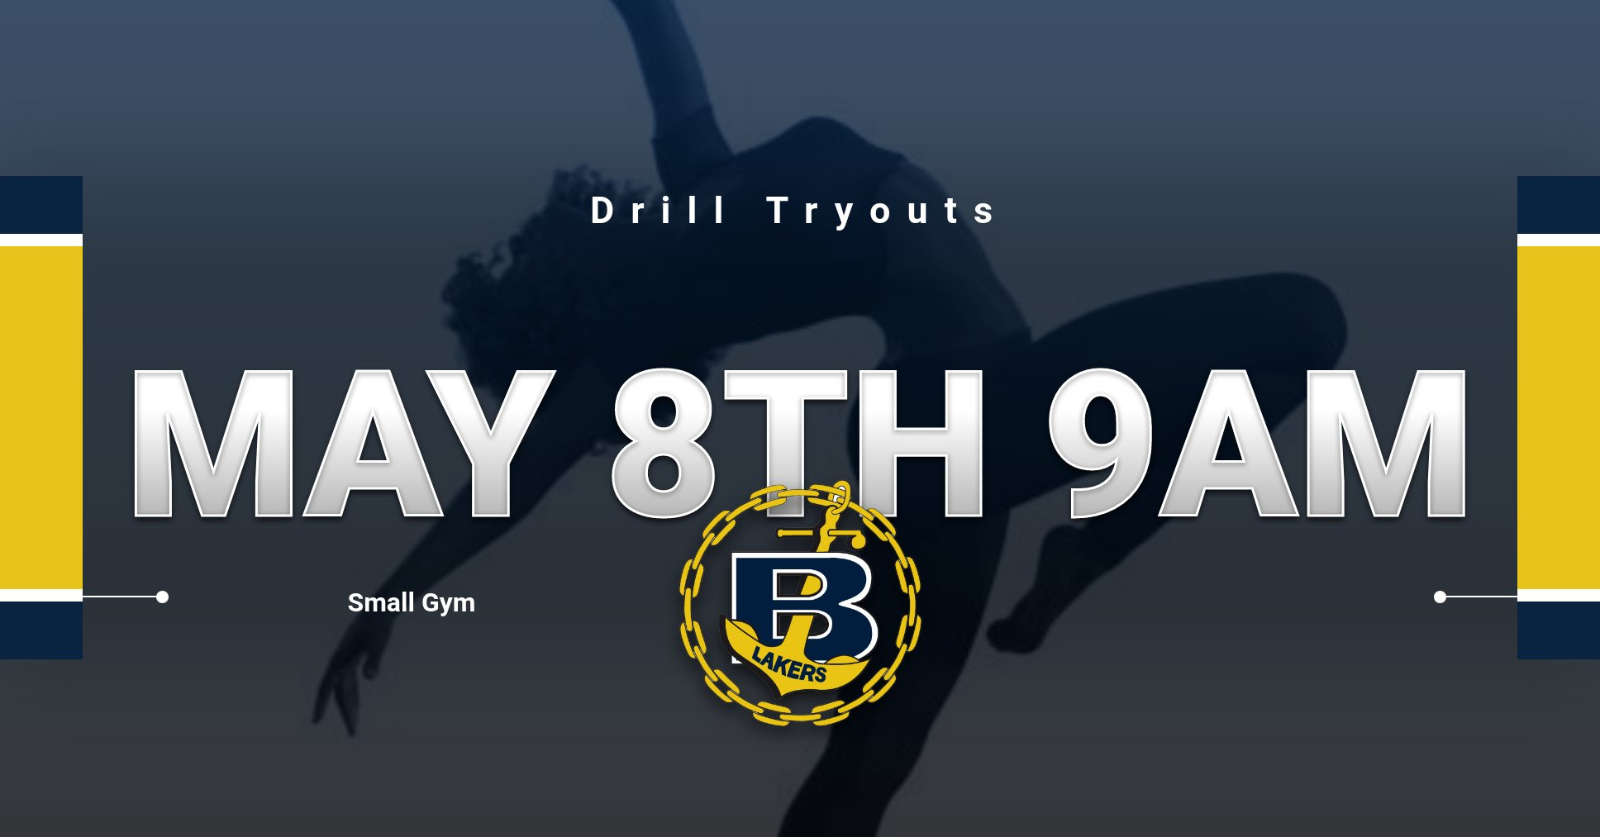 Drill Tryout Videos